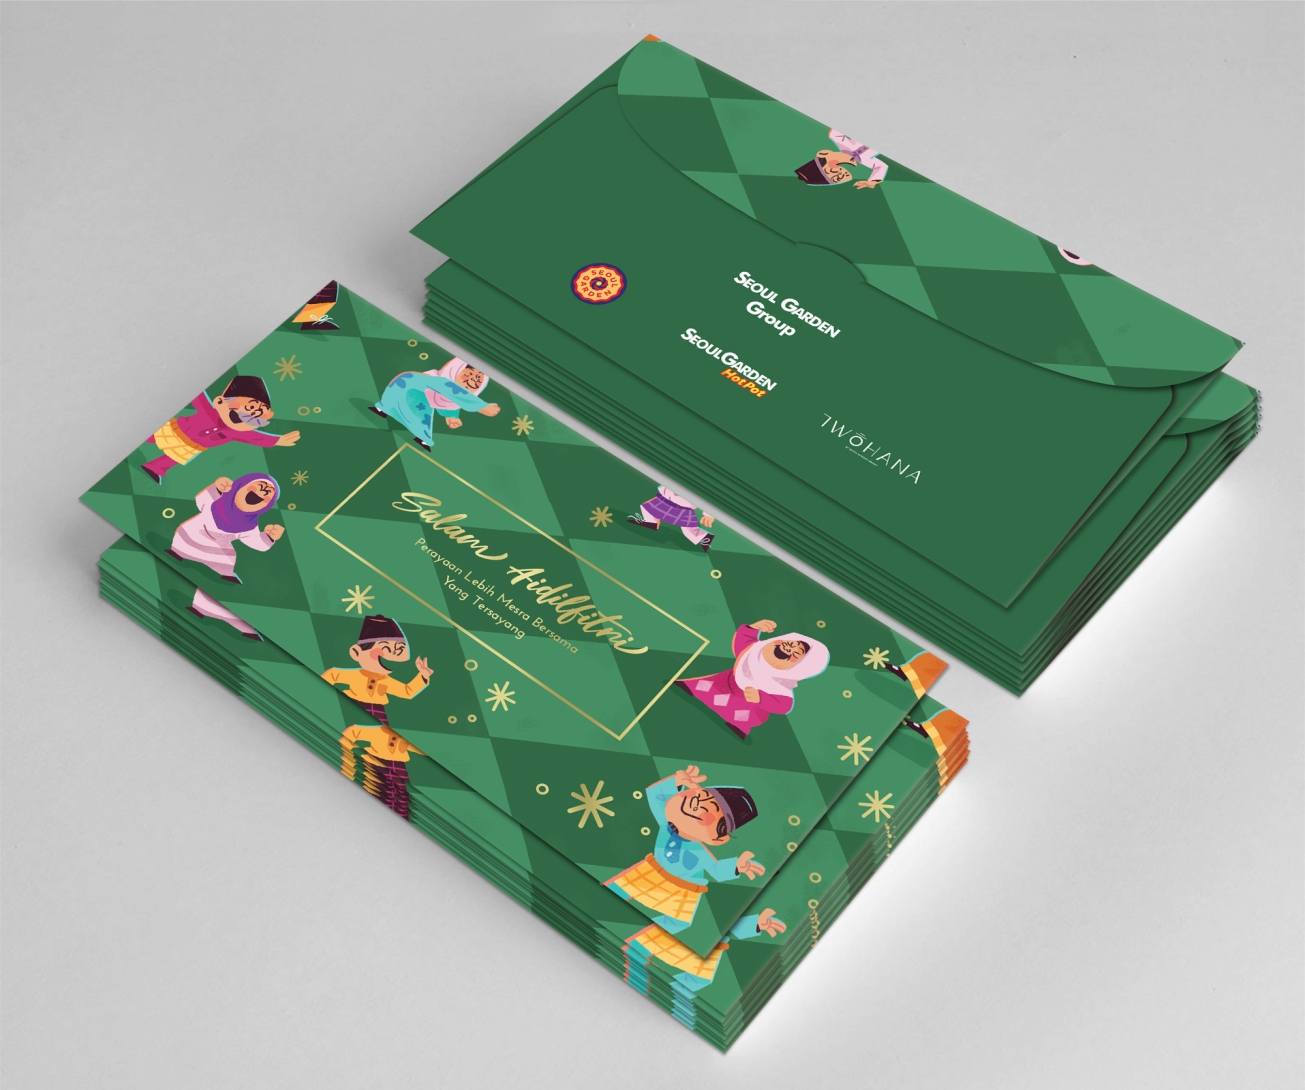 MOCKUP-190416-ZGH-SG-GreenPacket2019-w162x82mm-a